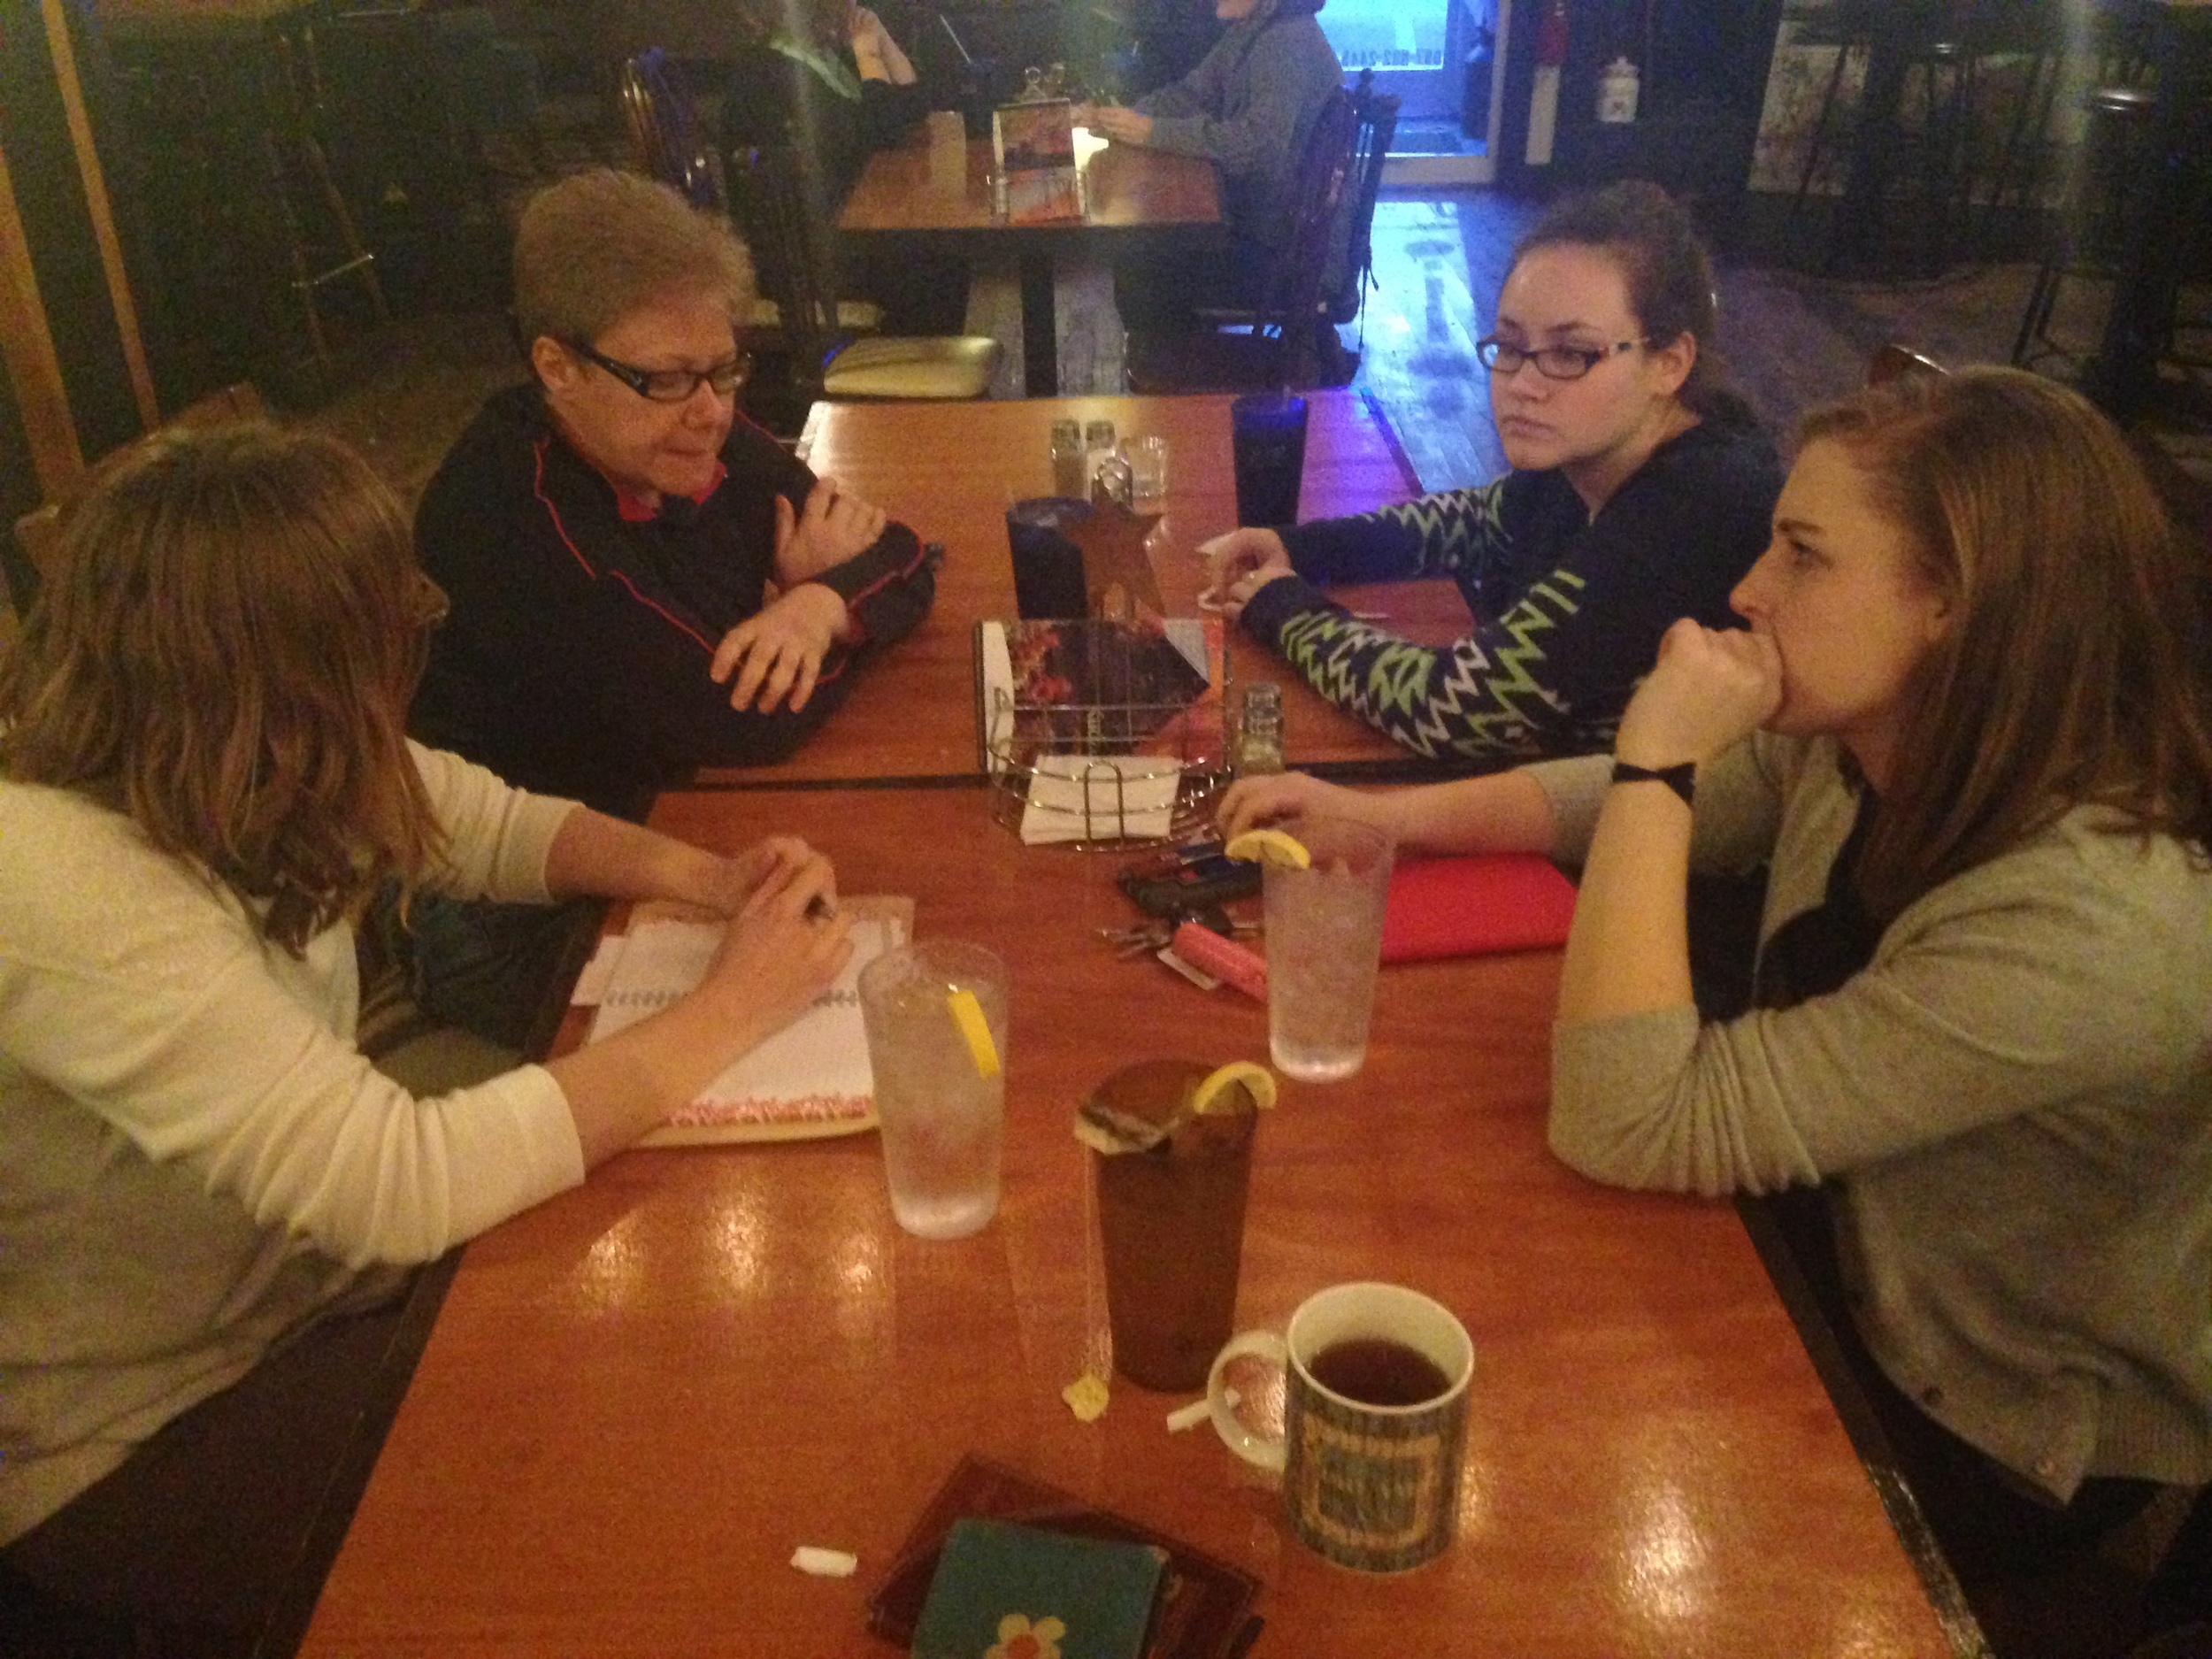 One of many community group meetings over dinner at Treehouse – this one about engaging more stakeholders in InVision efforts.